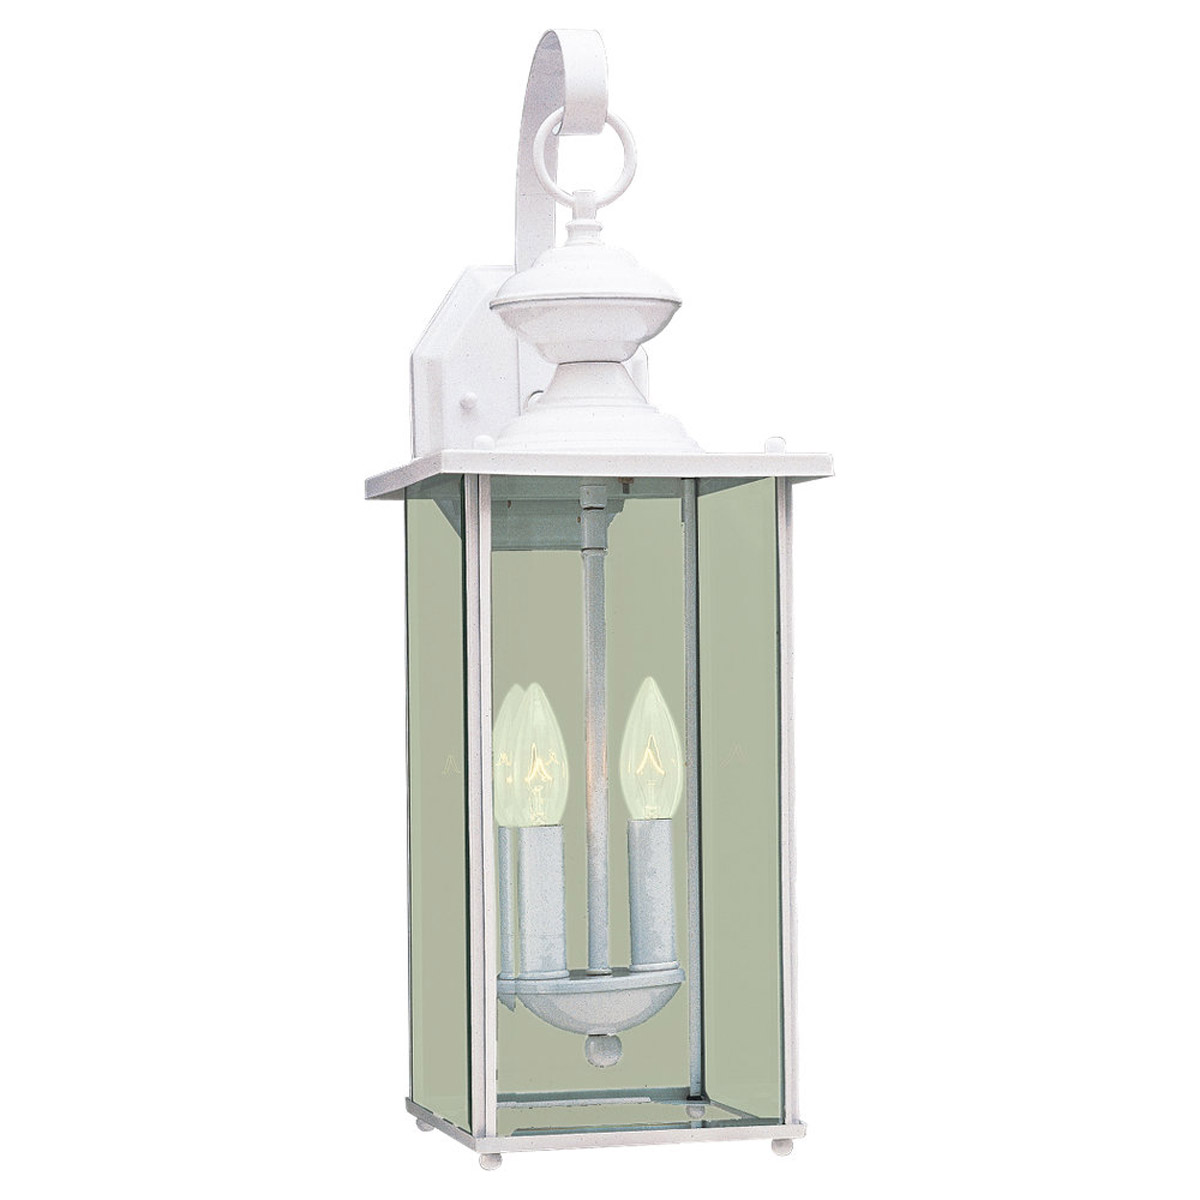 Sea Gull Lighting Jamestowne 2 Light Outdoor Wall Lantern in White 8468-15 photo